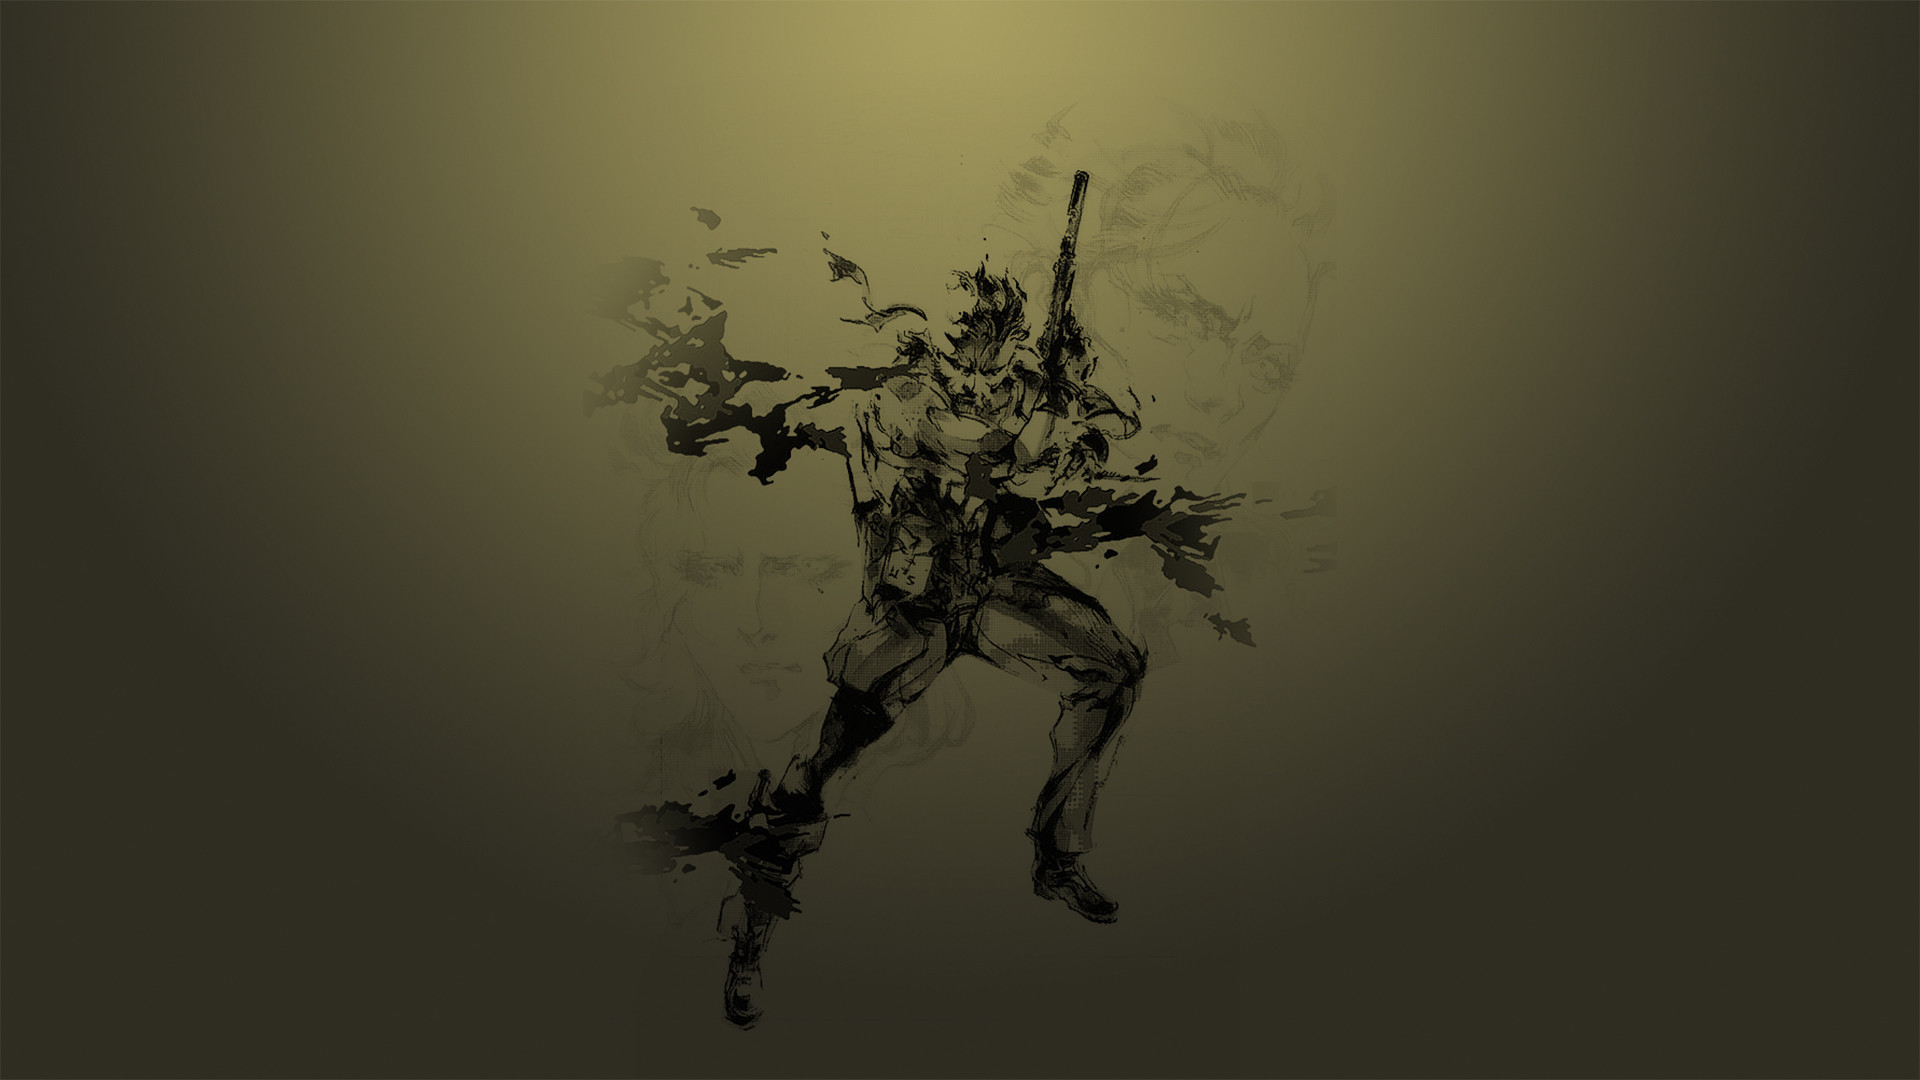 1920x1080 Free Metal Gear Solid 3 Wallpaper In